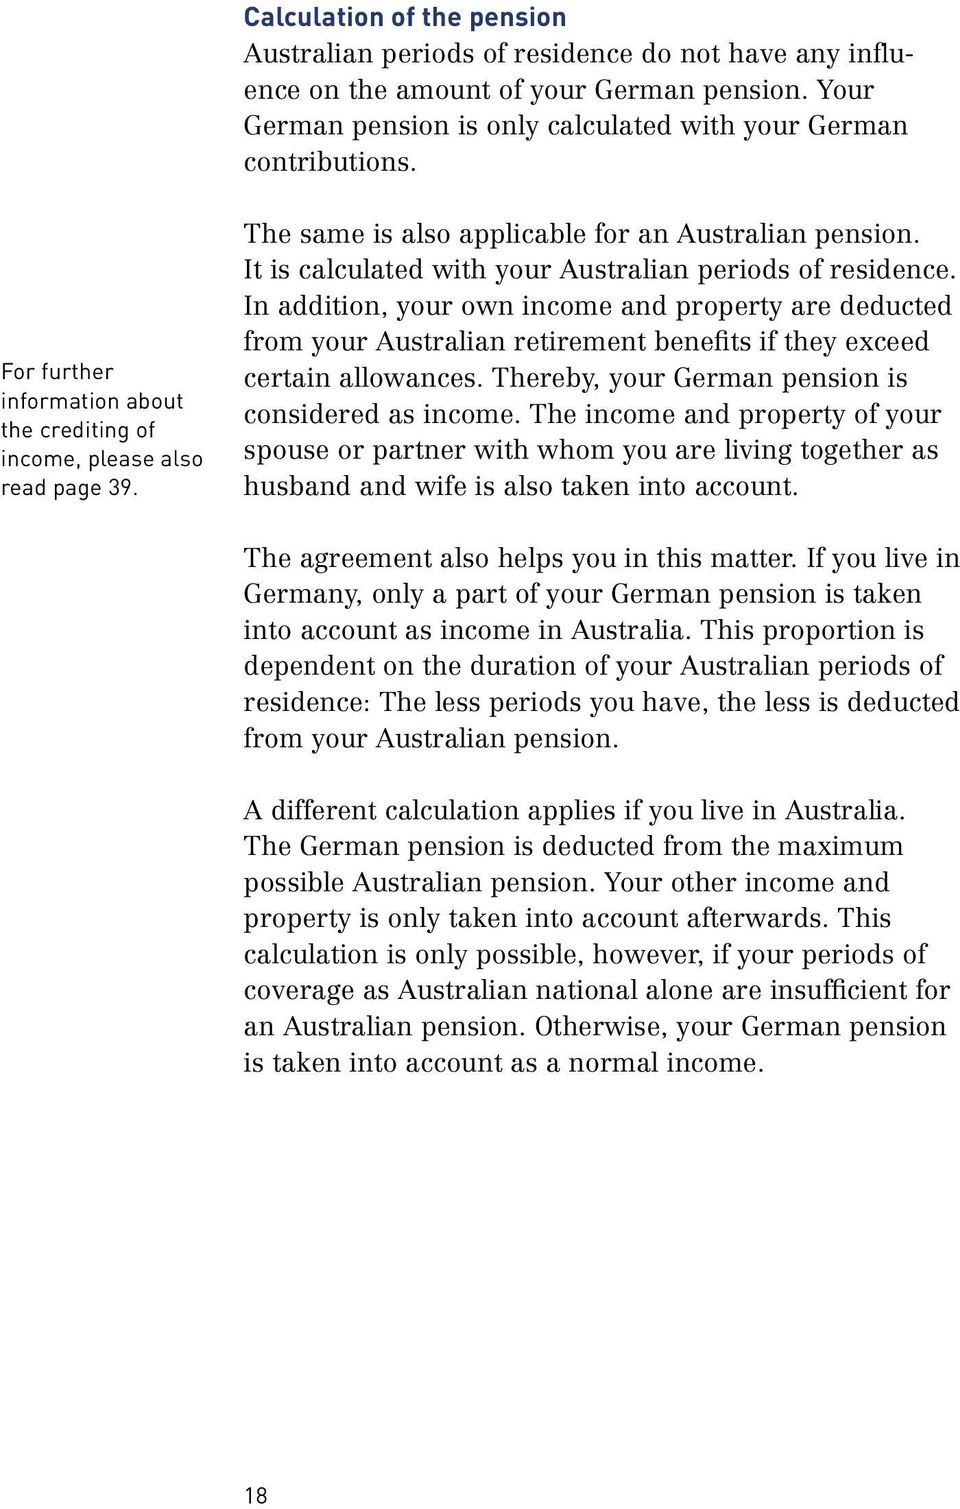 In addition, your own income and property are deducted from your Australian retirement benefits if they exceed certain allowances. Thereby, your German pension is considered as income.